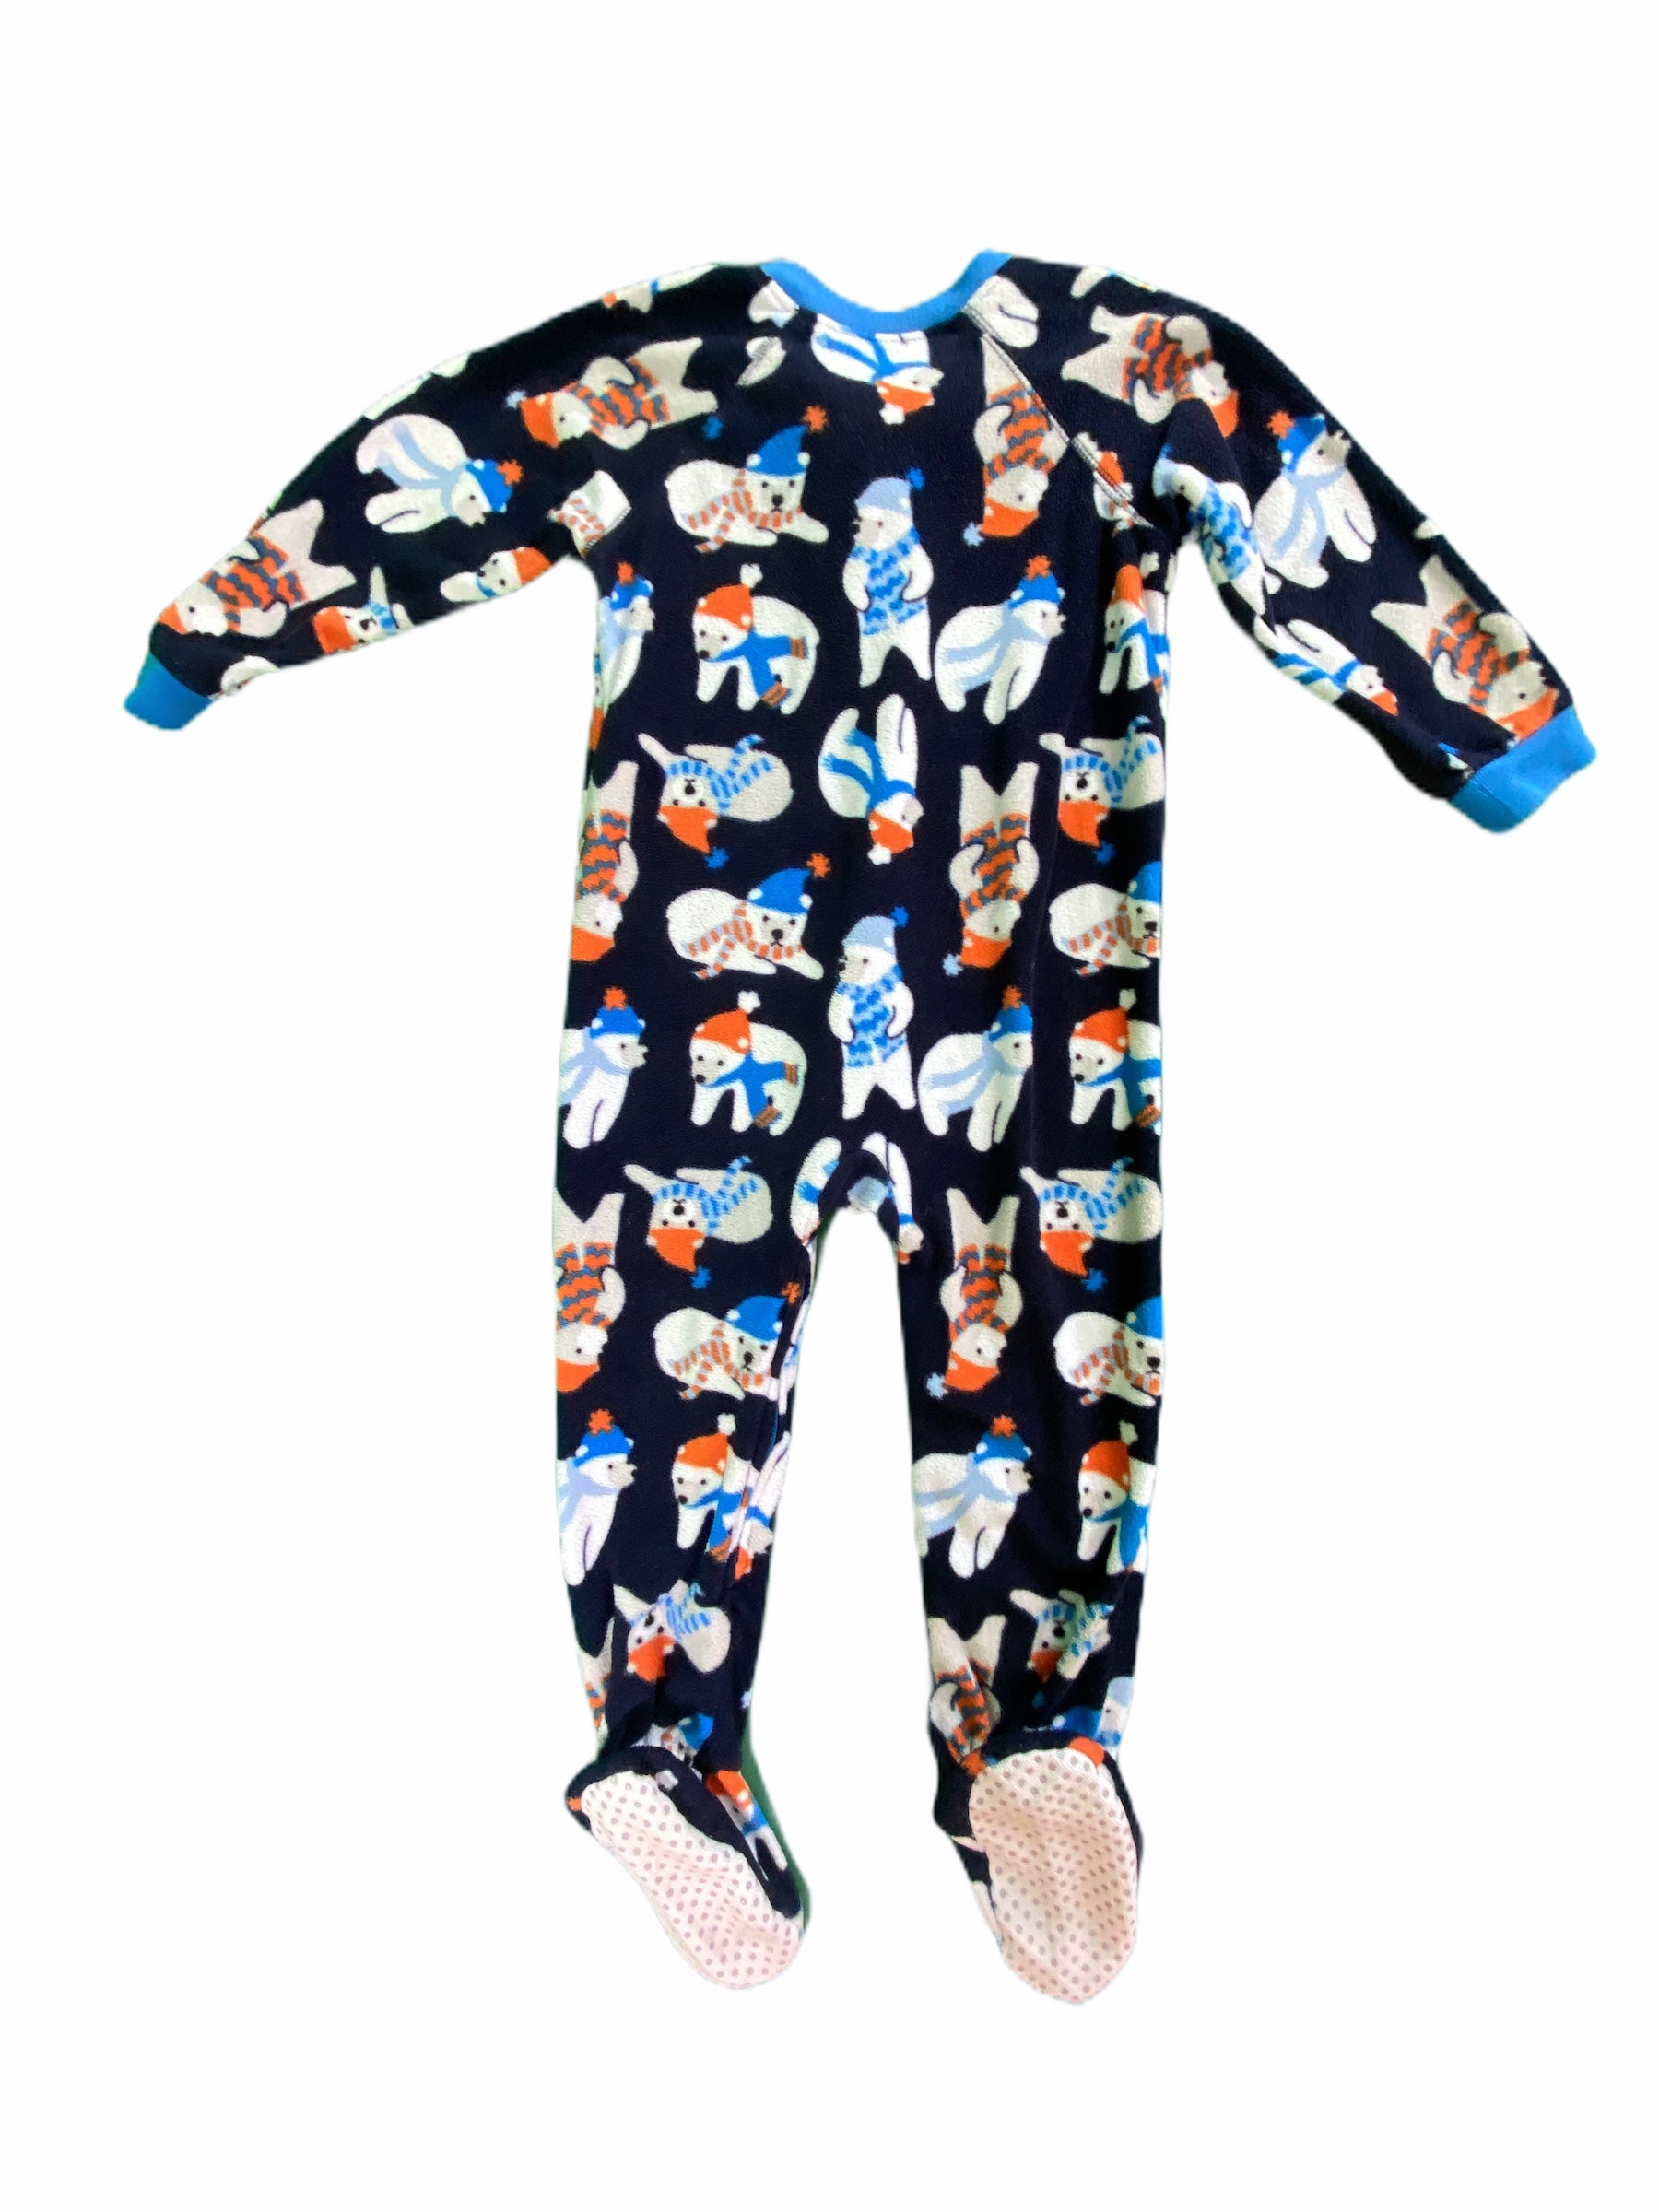 Place Navy Polar Bear Fleece Sleeper (2T Boys)